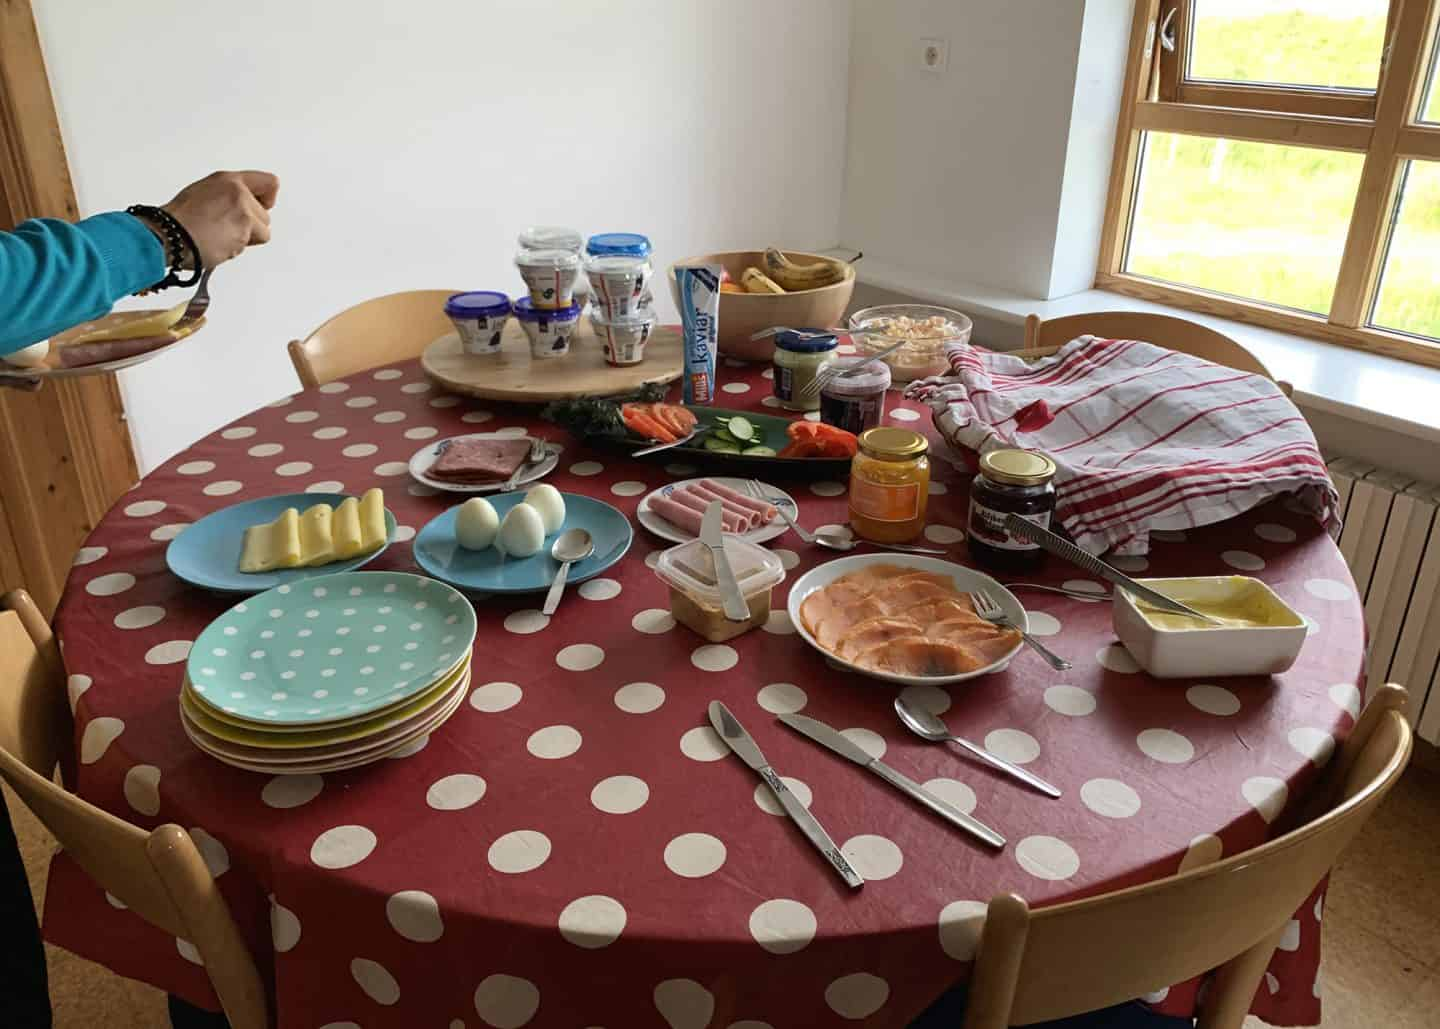 Our Airbnb host at the Laugabol Horse Farm in the Westfjords had a homemade breakfast spread set up for guests every morning